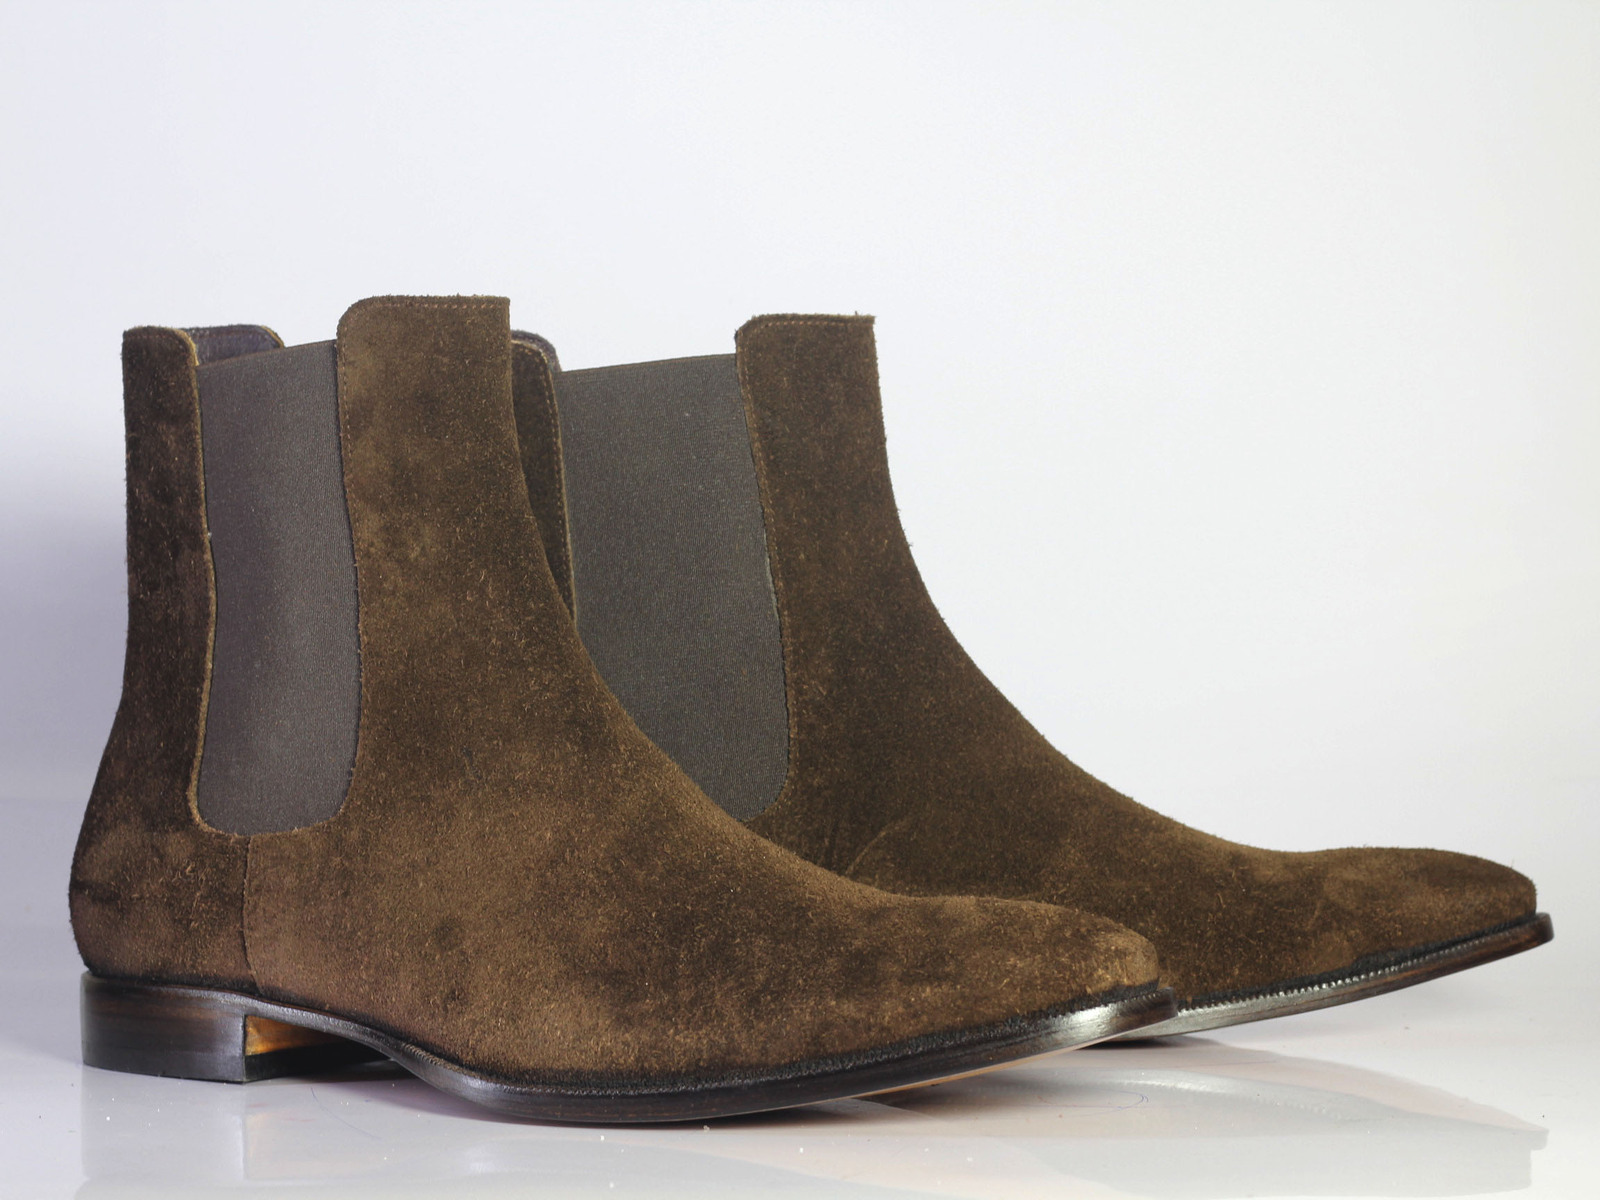 Handmade Men's Dark Brown Suede High Ankle Chelsea Style Boots